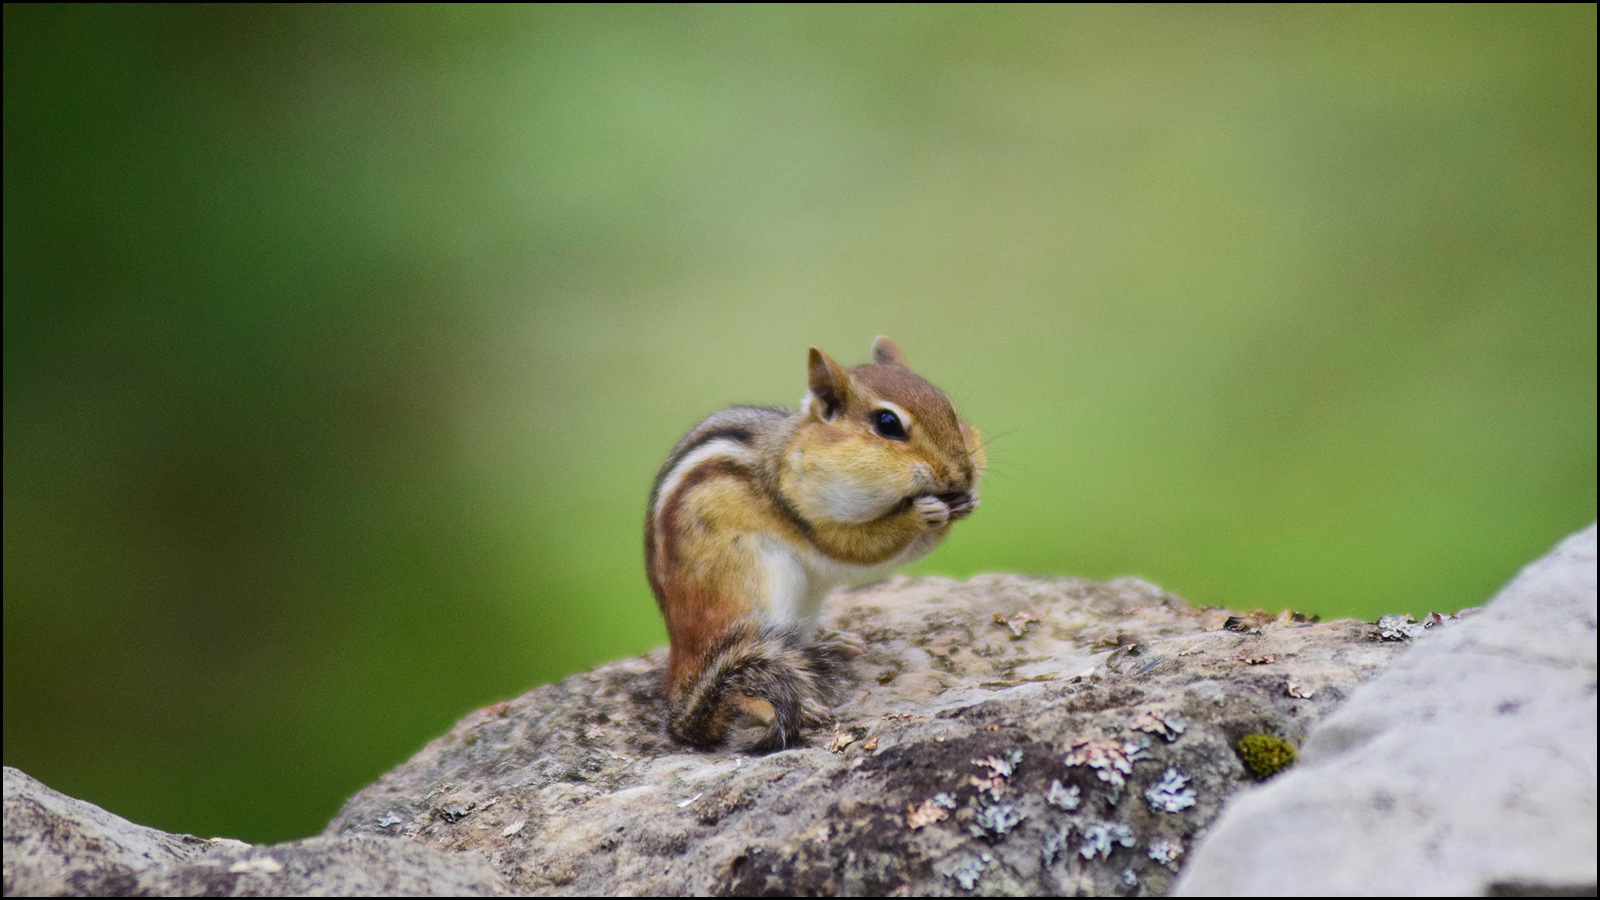 the chipmunk only cares that he gets nuts to eat (c) mark somple 2019